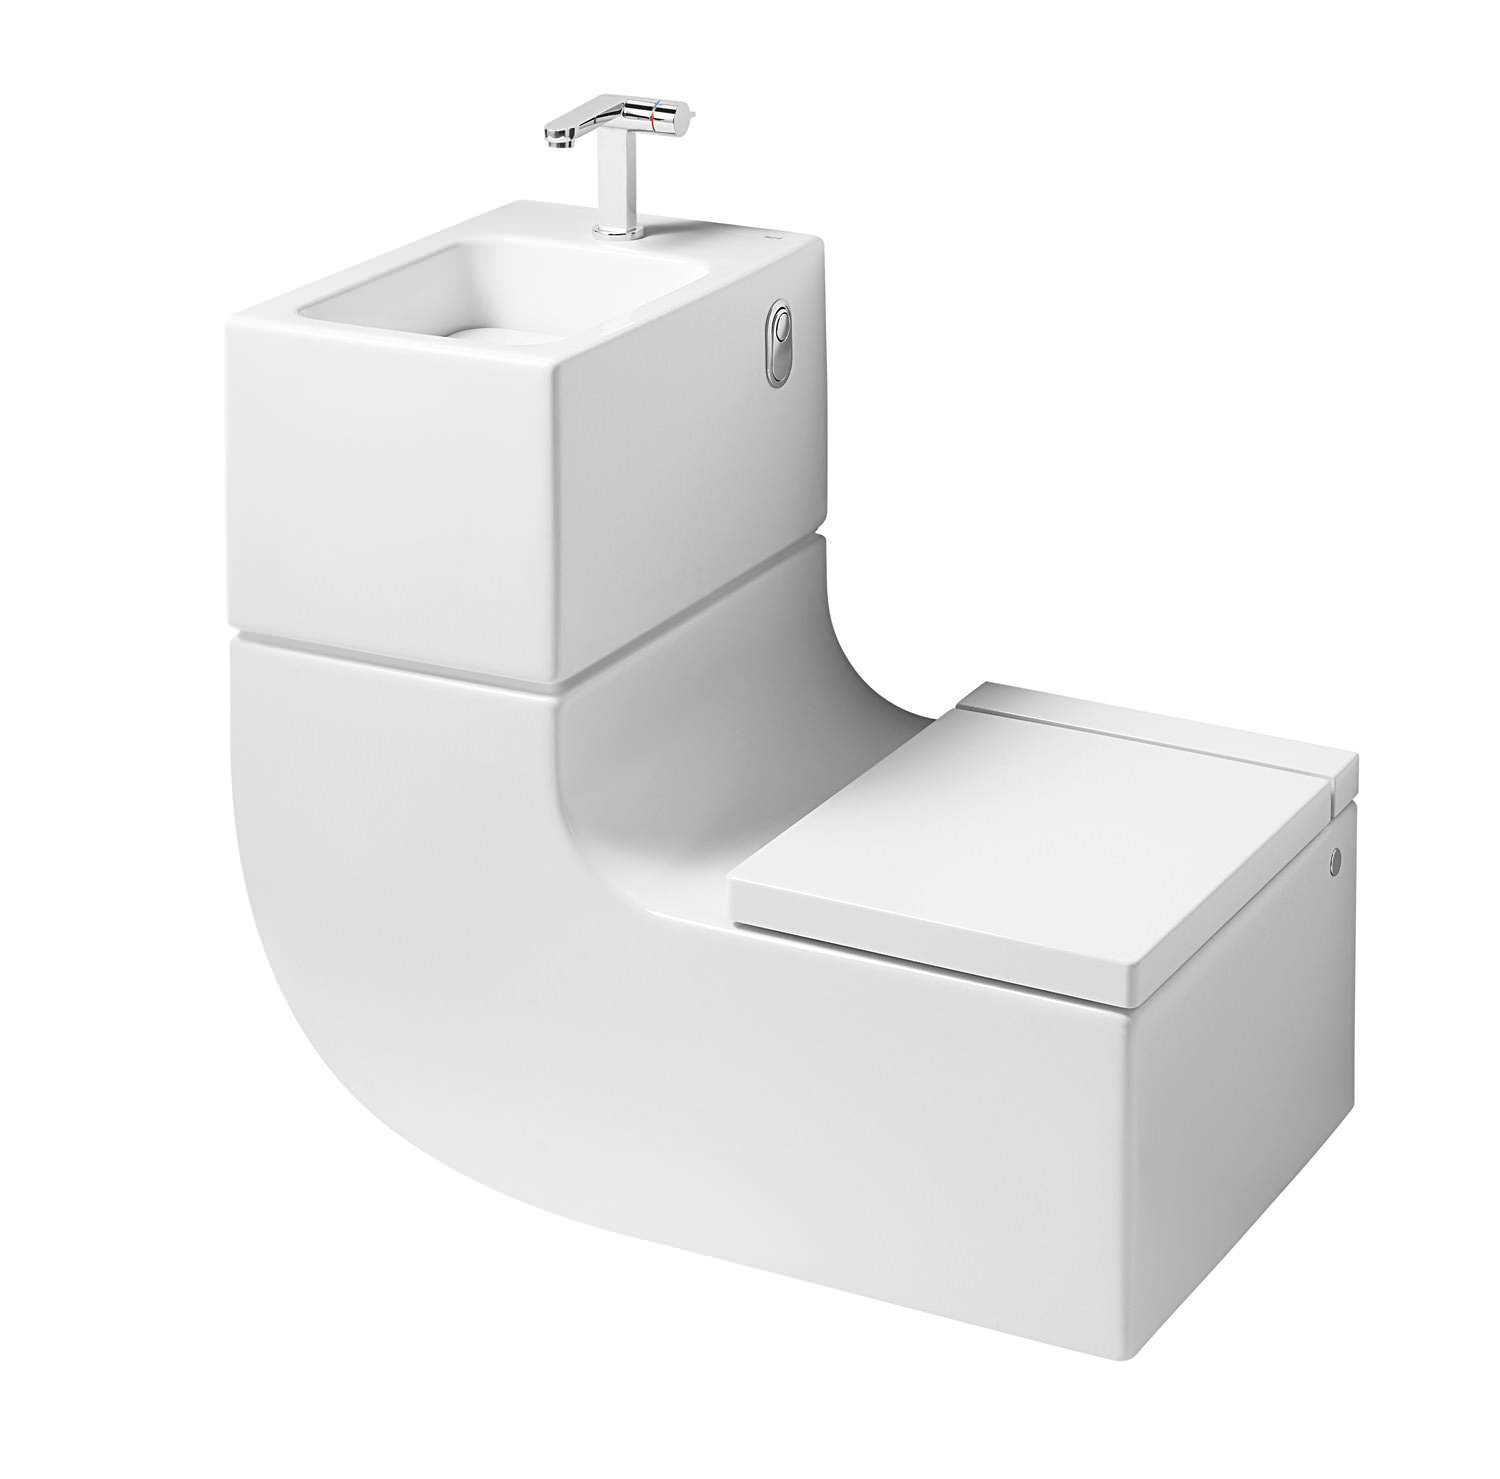 Roca Bathroom Accessories W Plus W Wall Hung Wc And Basin Including Tap And Waste